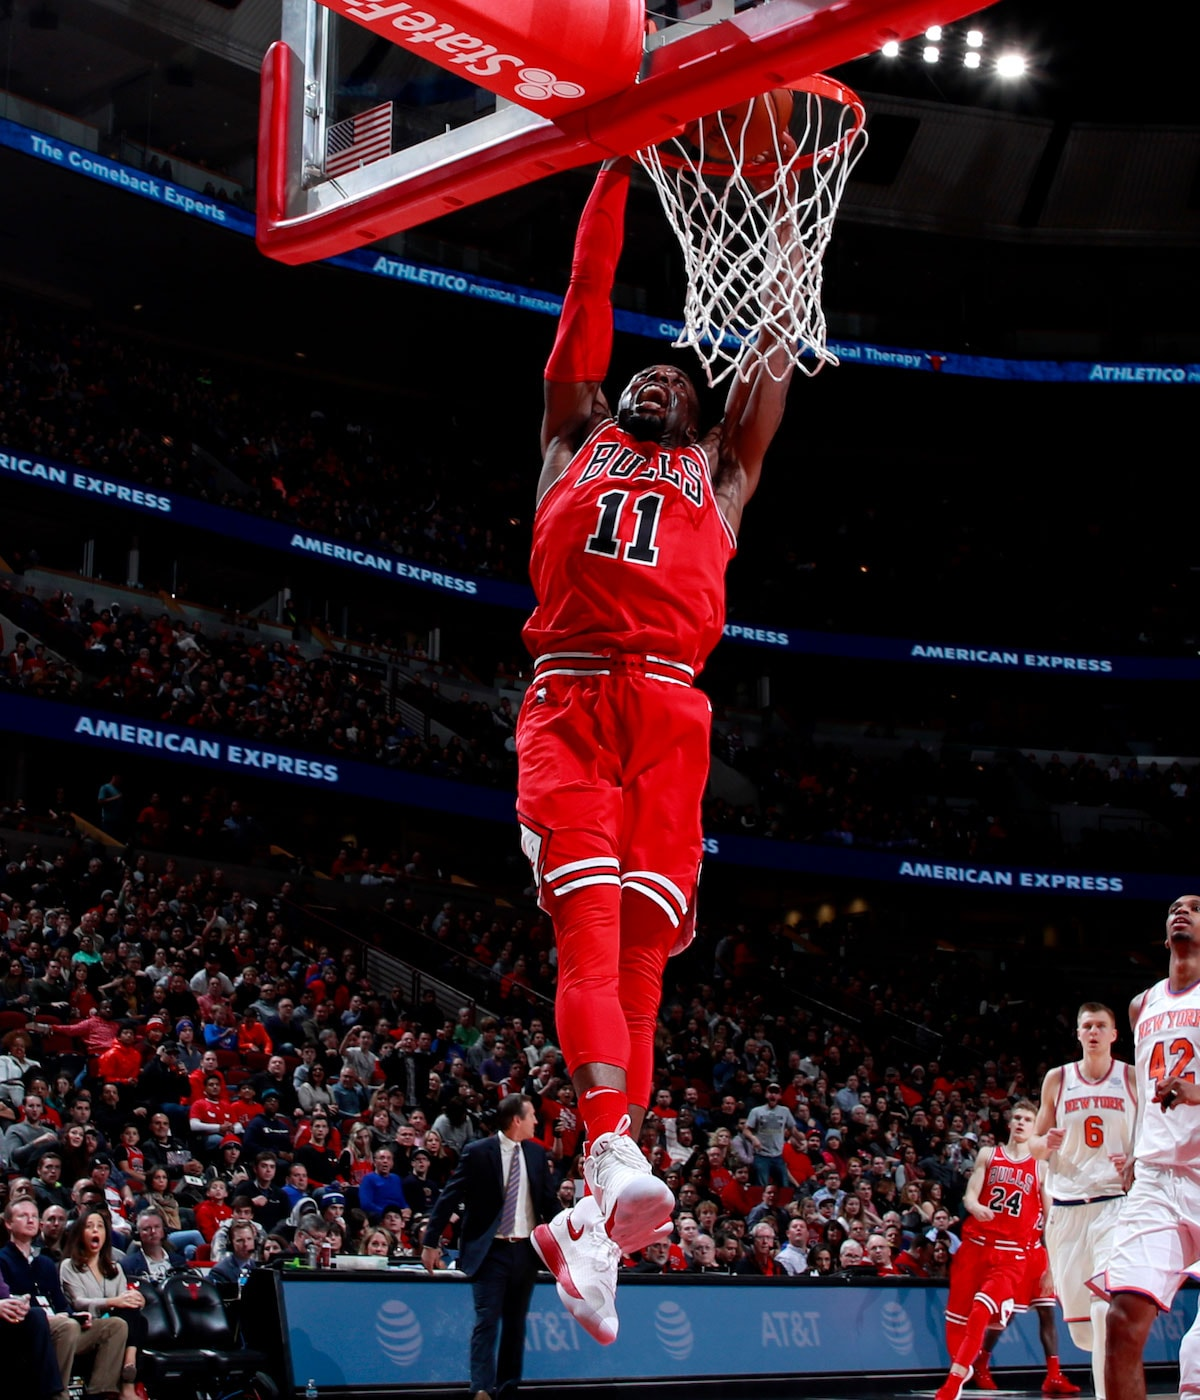 David Nwaba #11 of the Chicago Bulls dunks the ball against the New York Knicks on December 9, 2017 at the United Center in Chicago, Illinois.